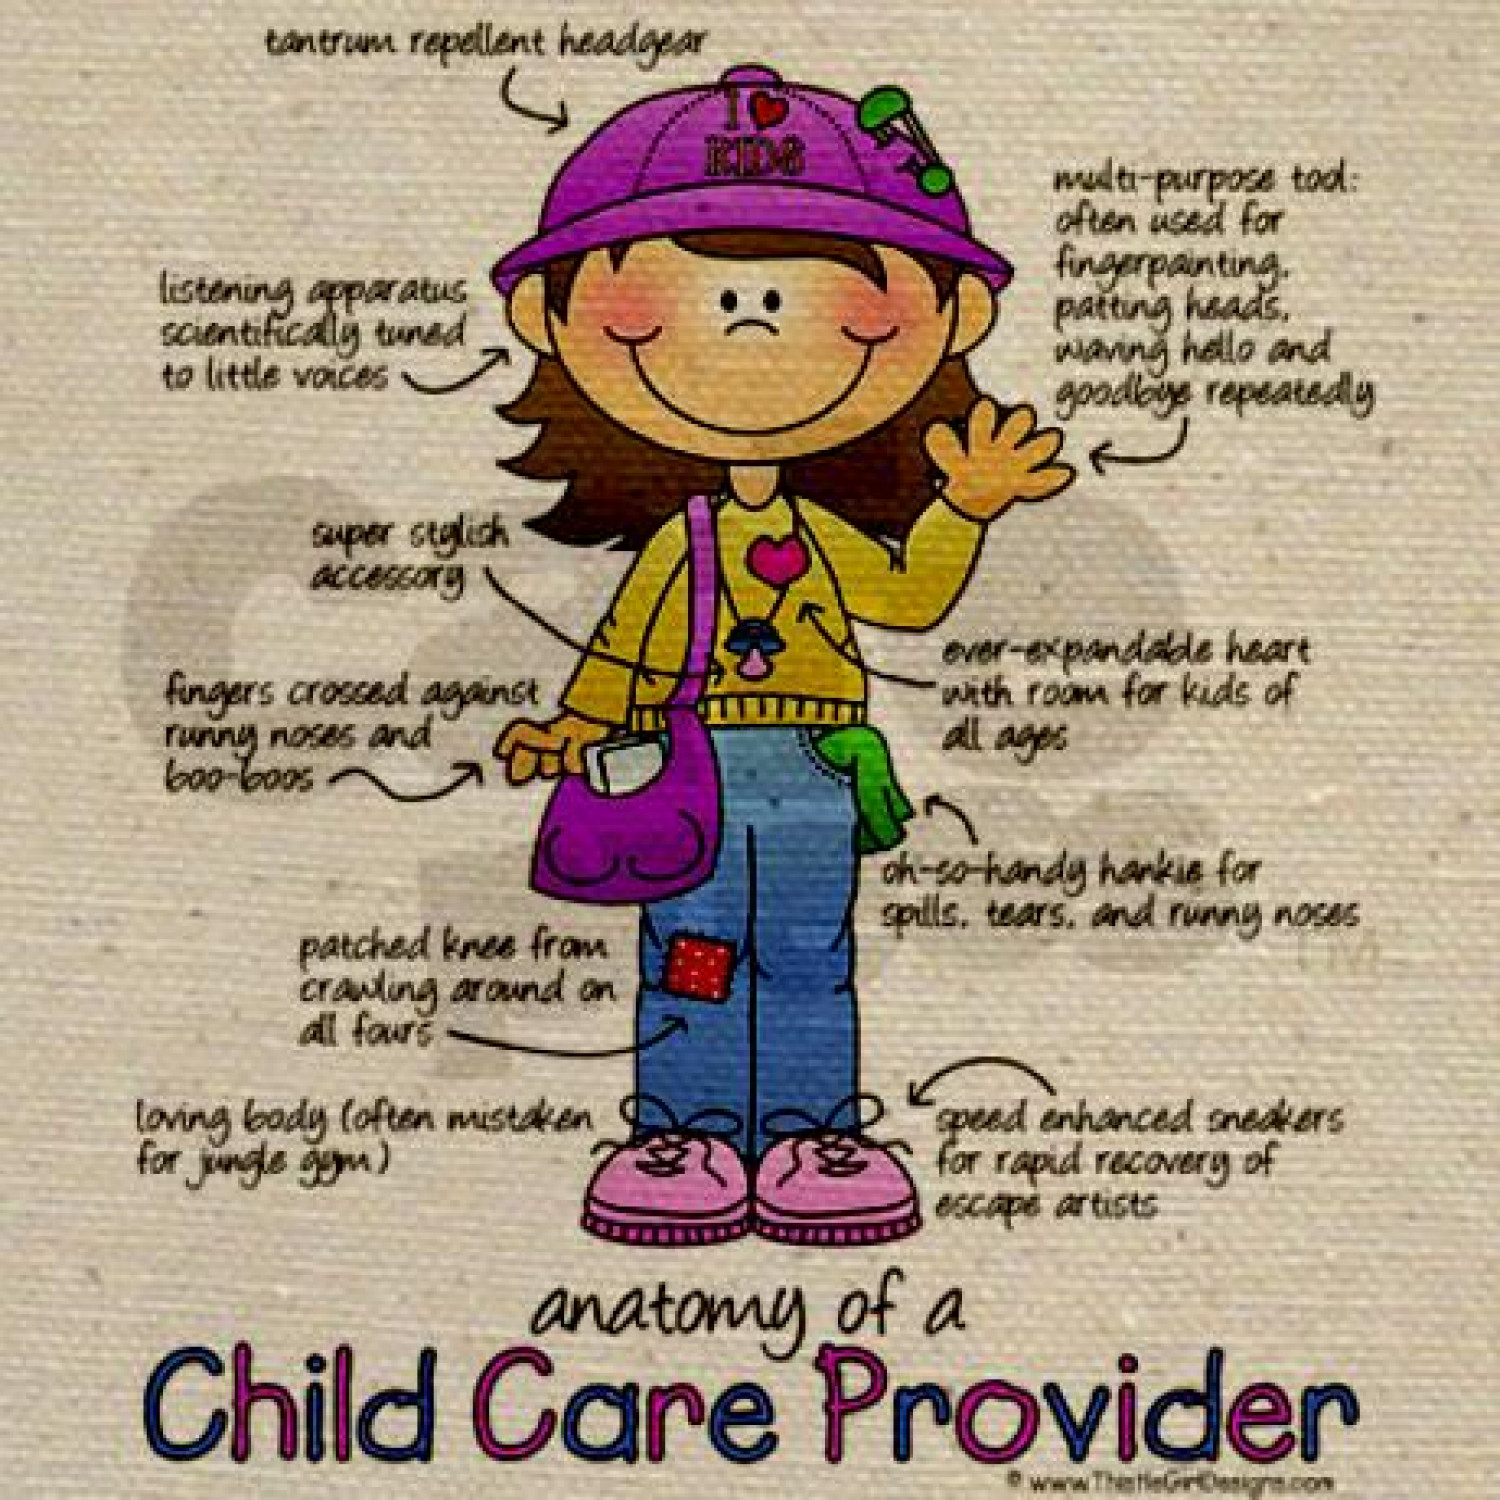 Anatomy of a Child Care Provider | Visual.ly